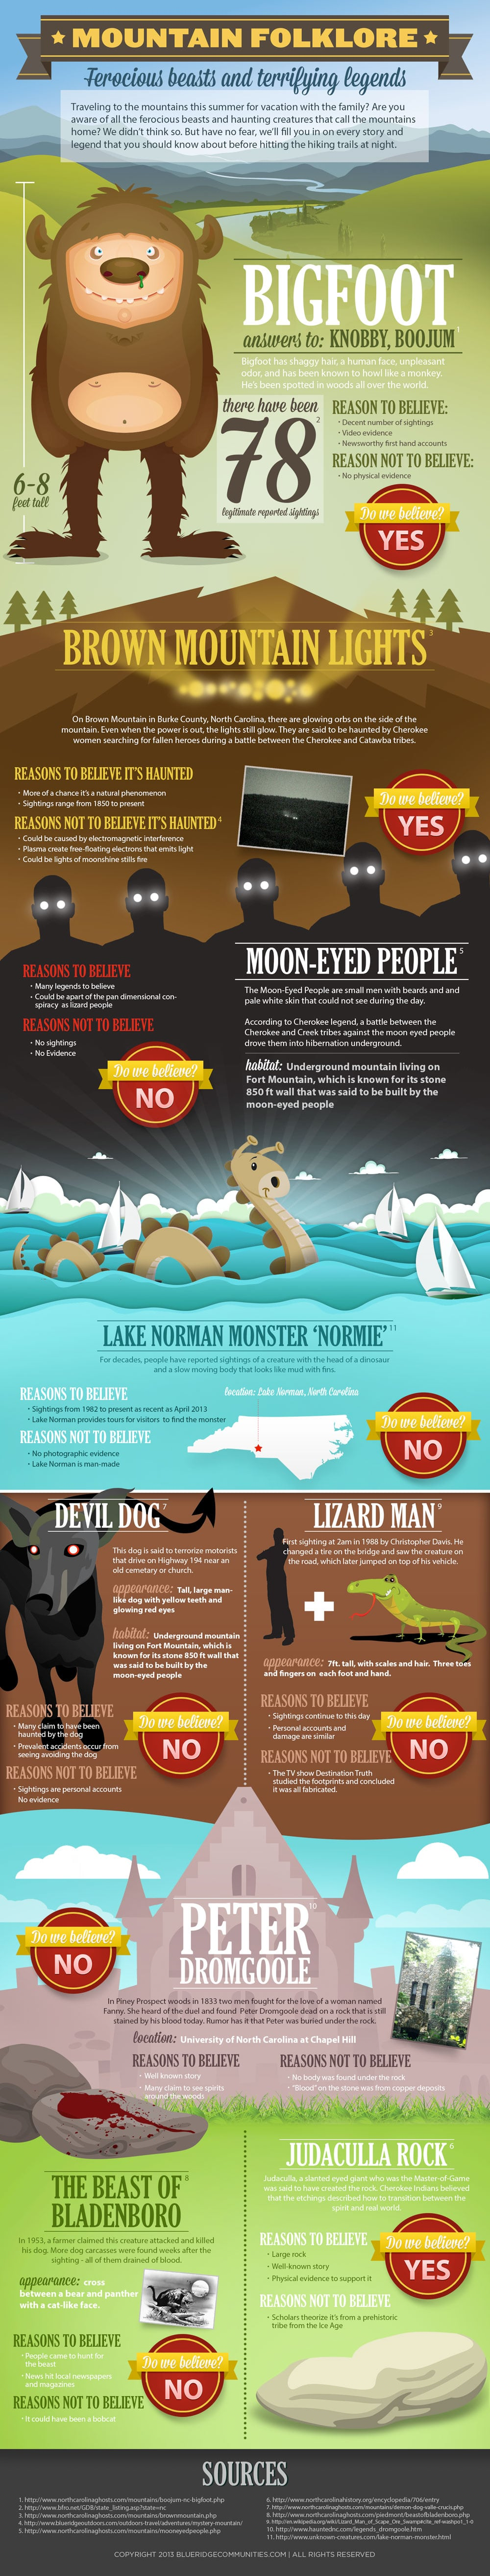 Mountain Myths